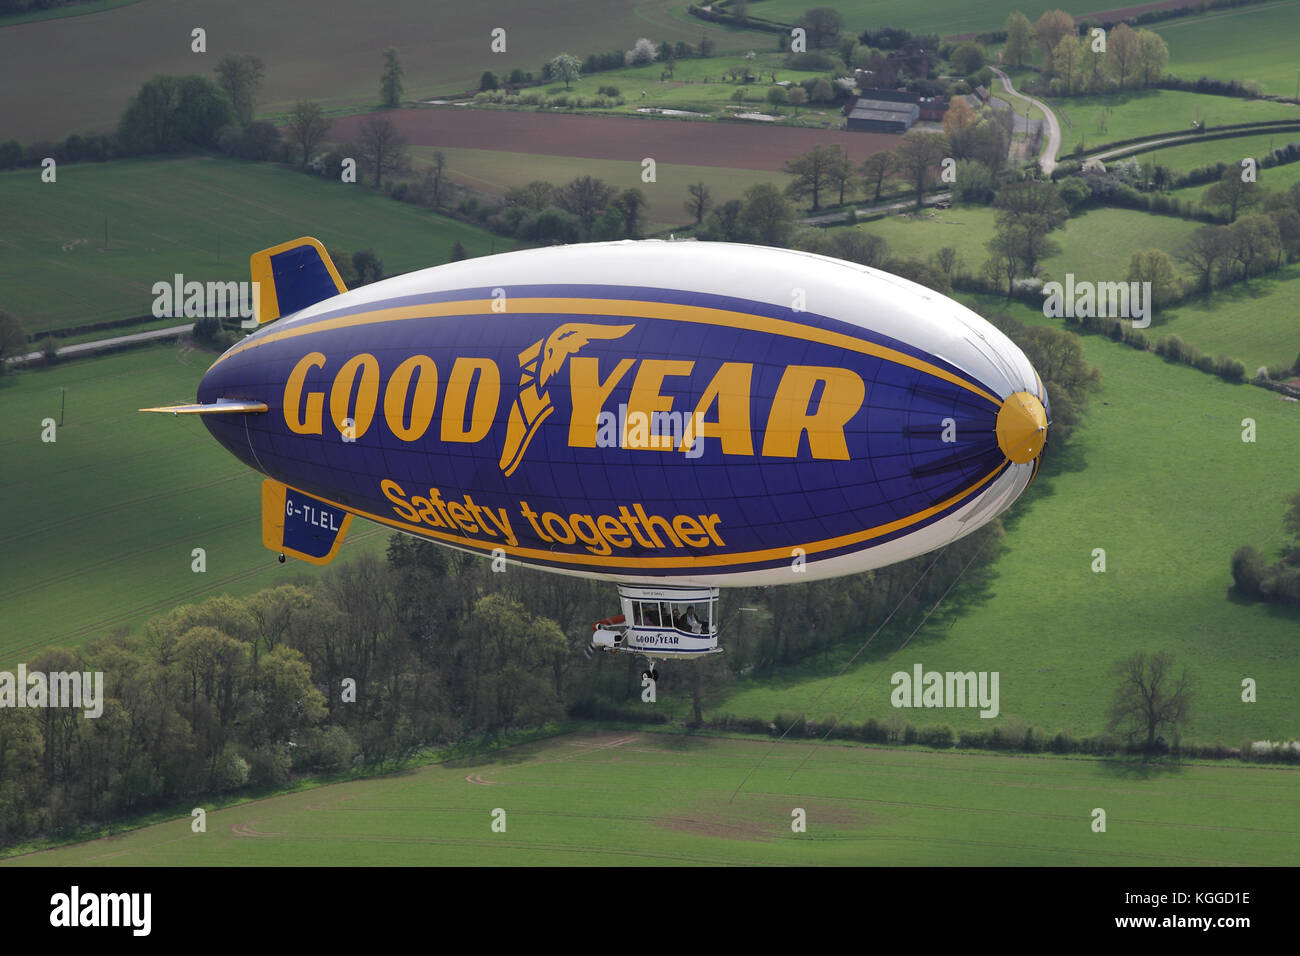 Air to air in flight Goodyear dirigible blimp / airship G-TLEL Spirit of Safety airborne flying over Shropshire - Stock Image